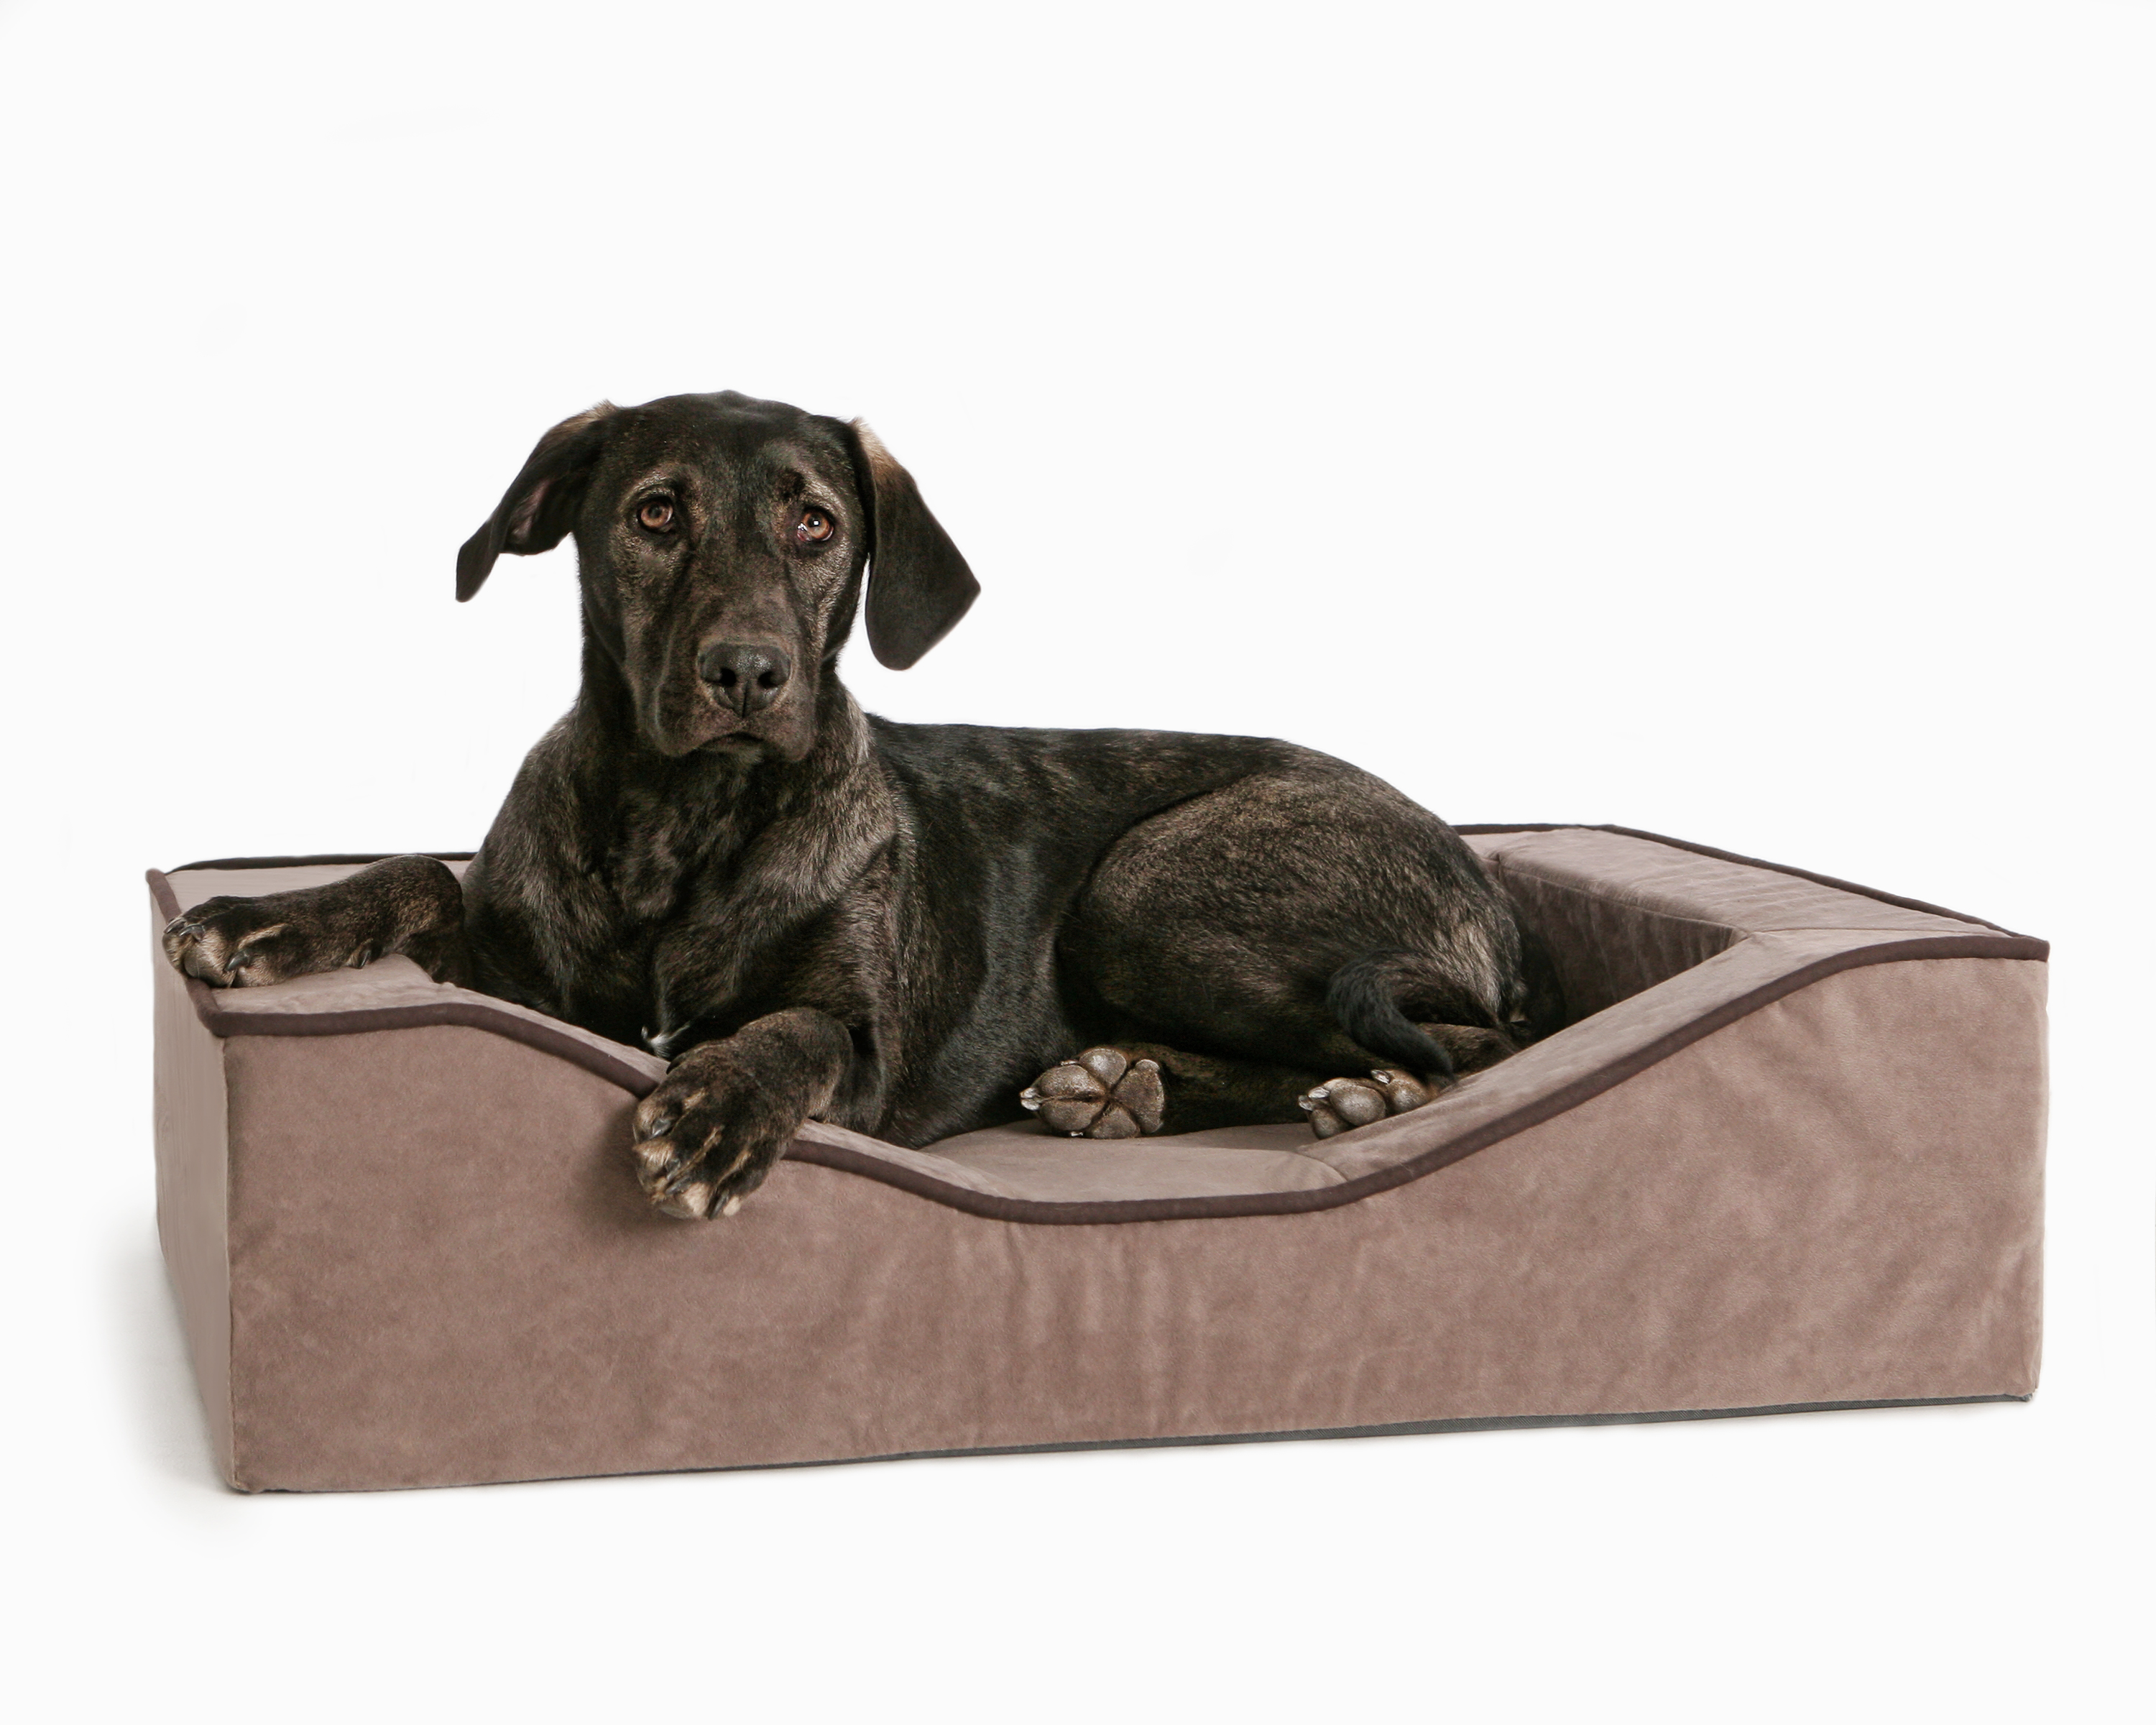 Orthopedic Dog Beds: Not Just for Seniors!